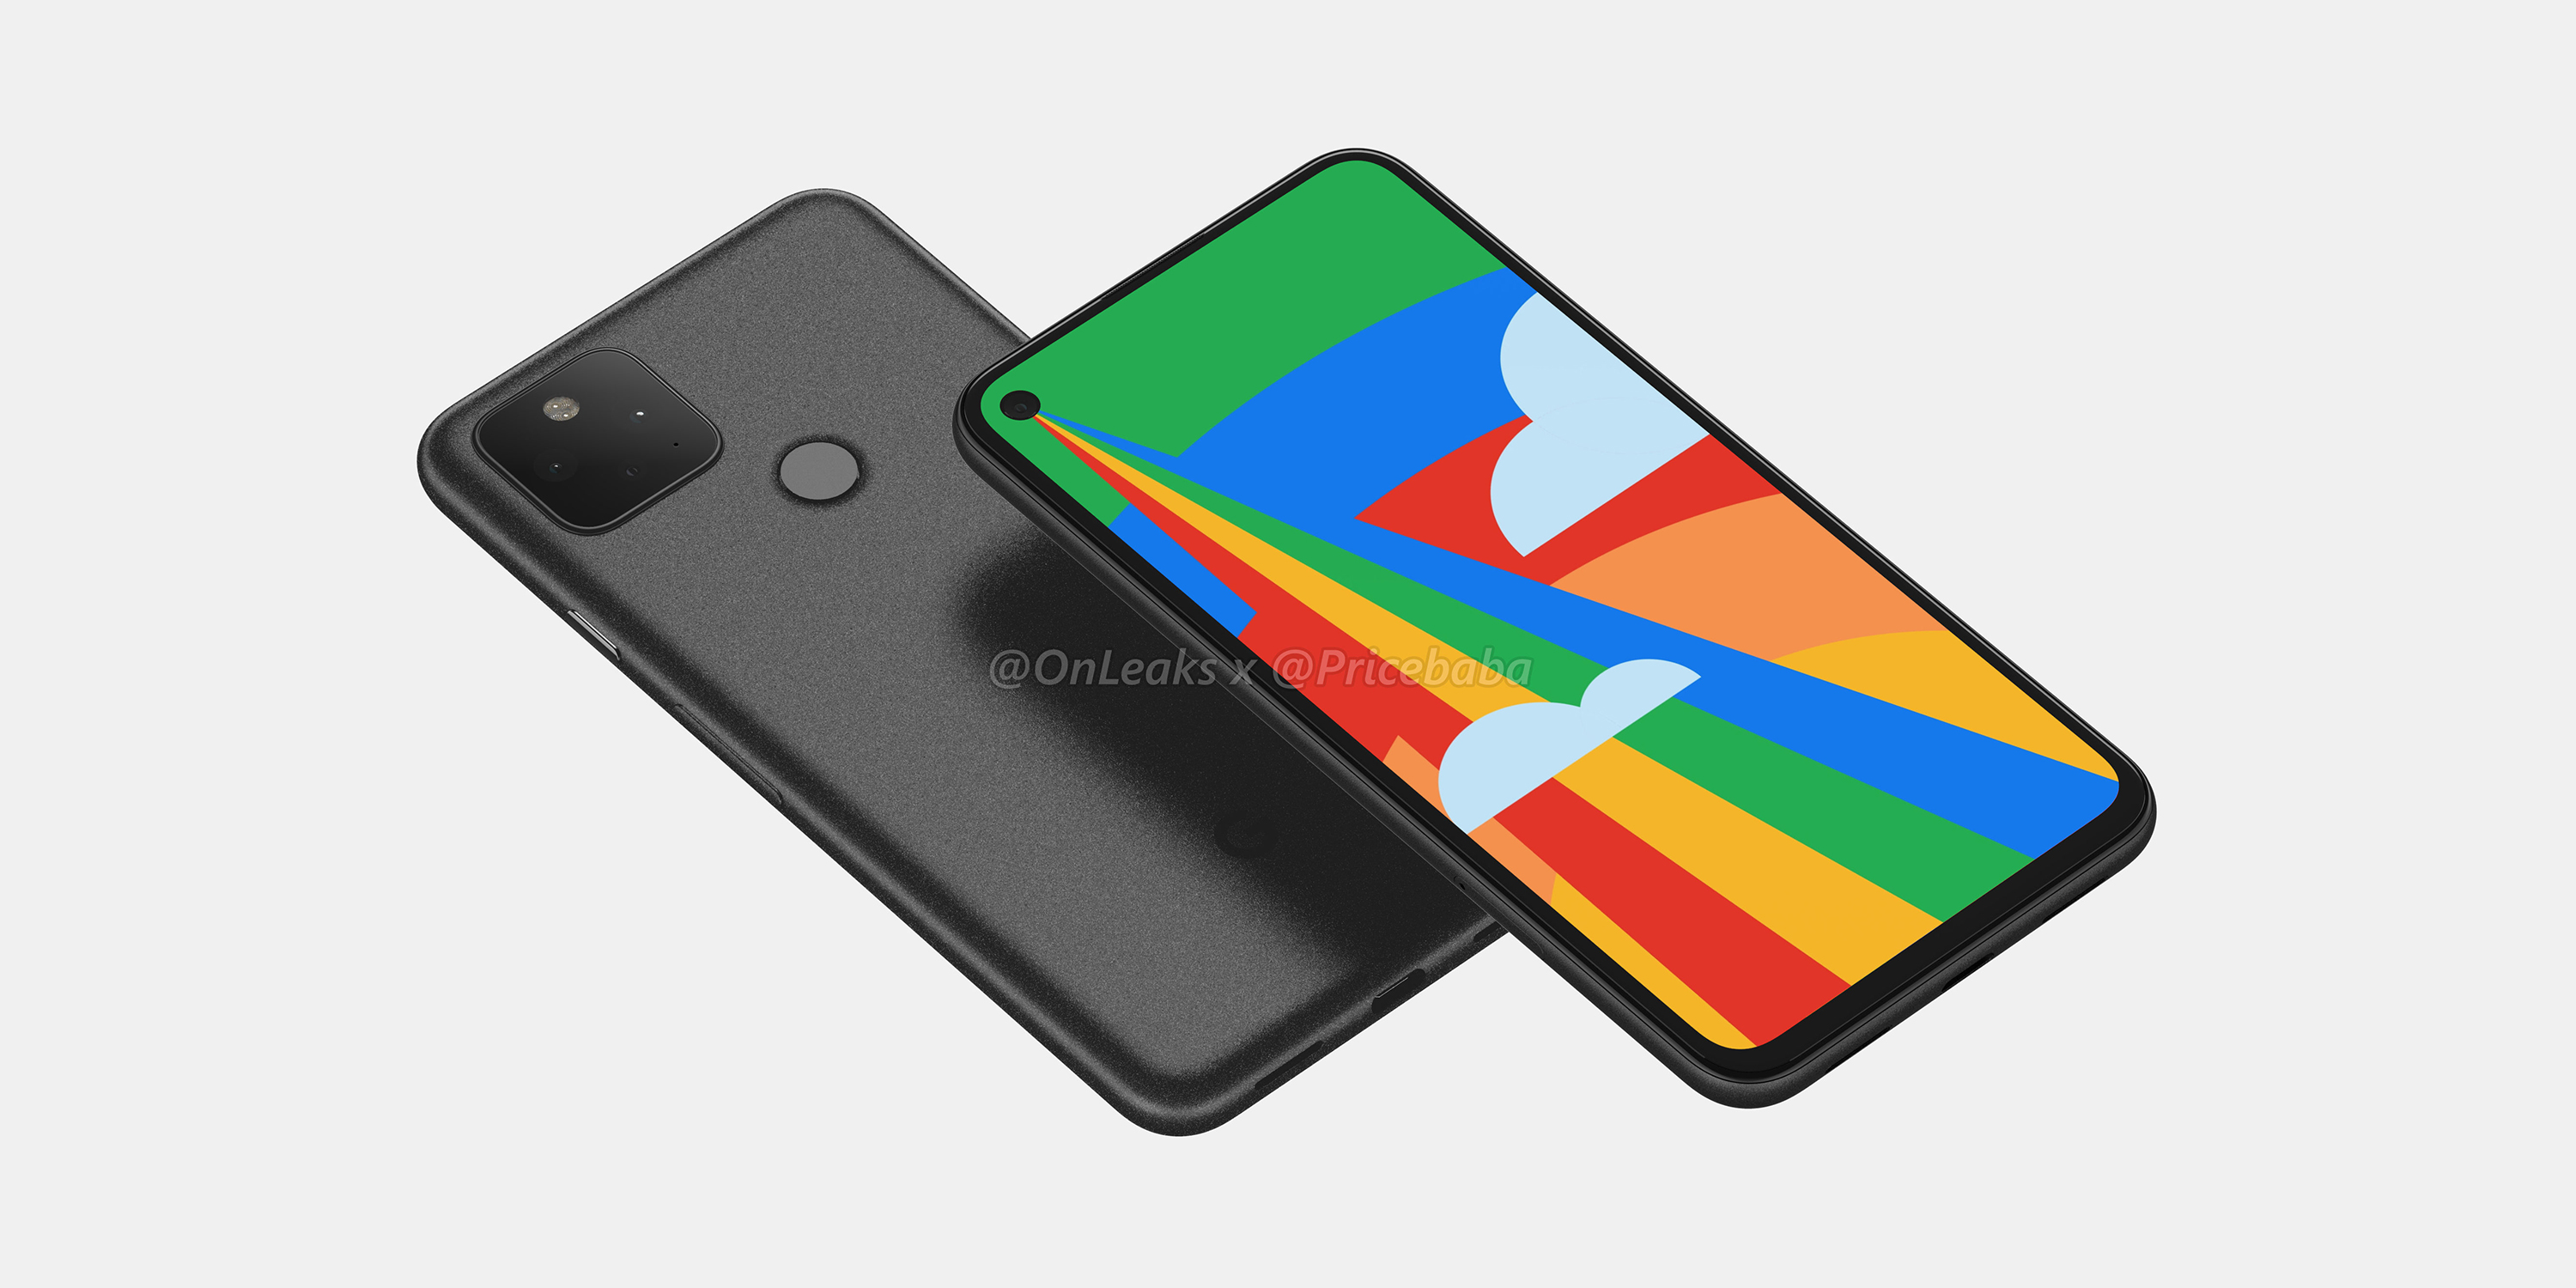 First reputable Pixel 5 renders leak showing familiar design - 9to5Google